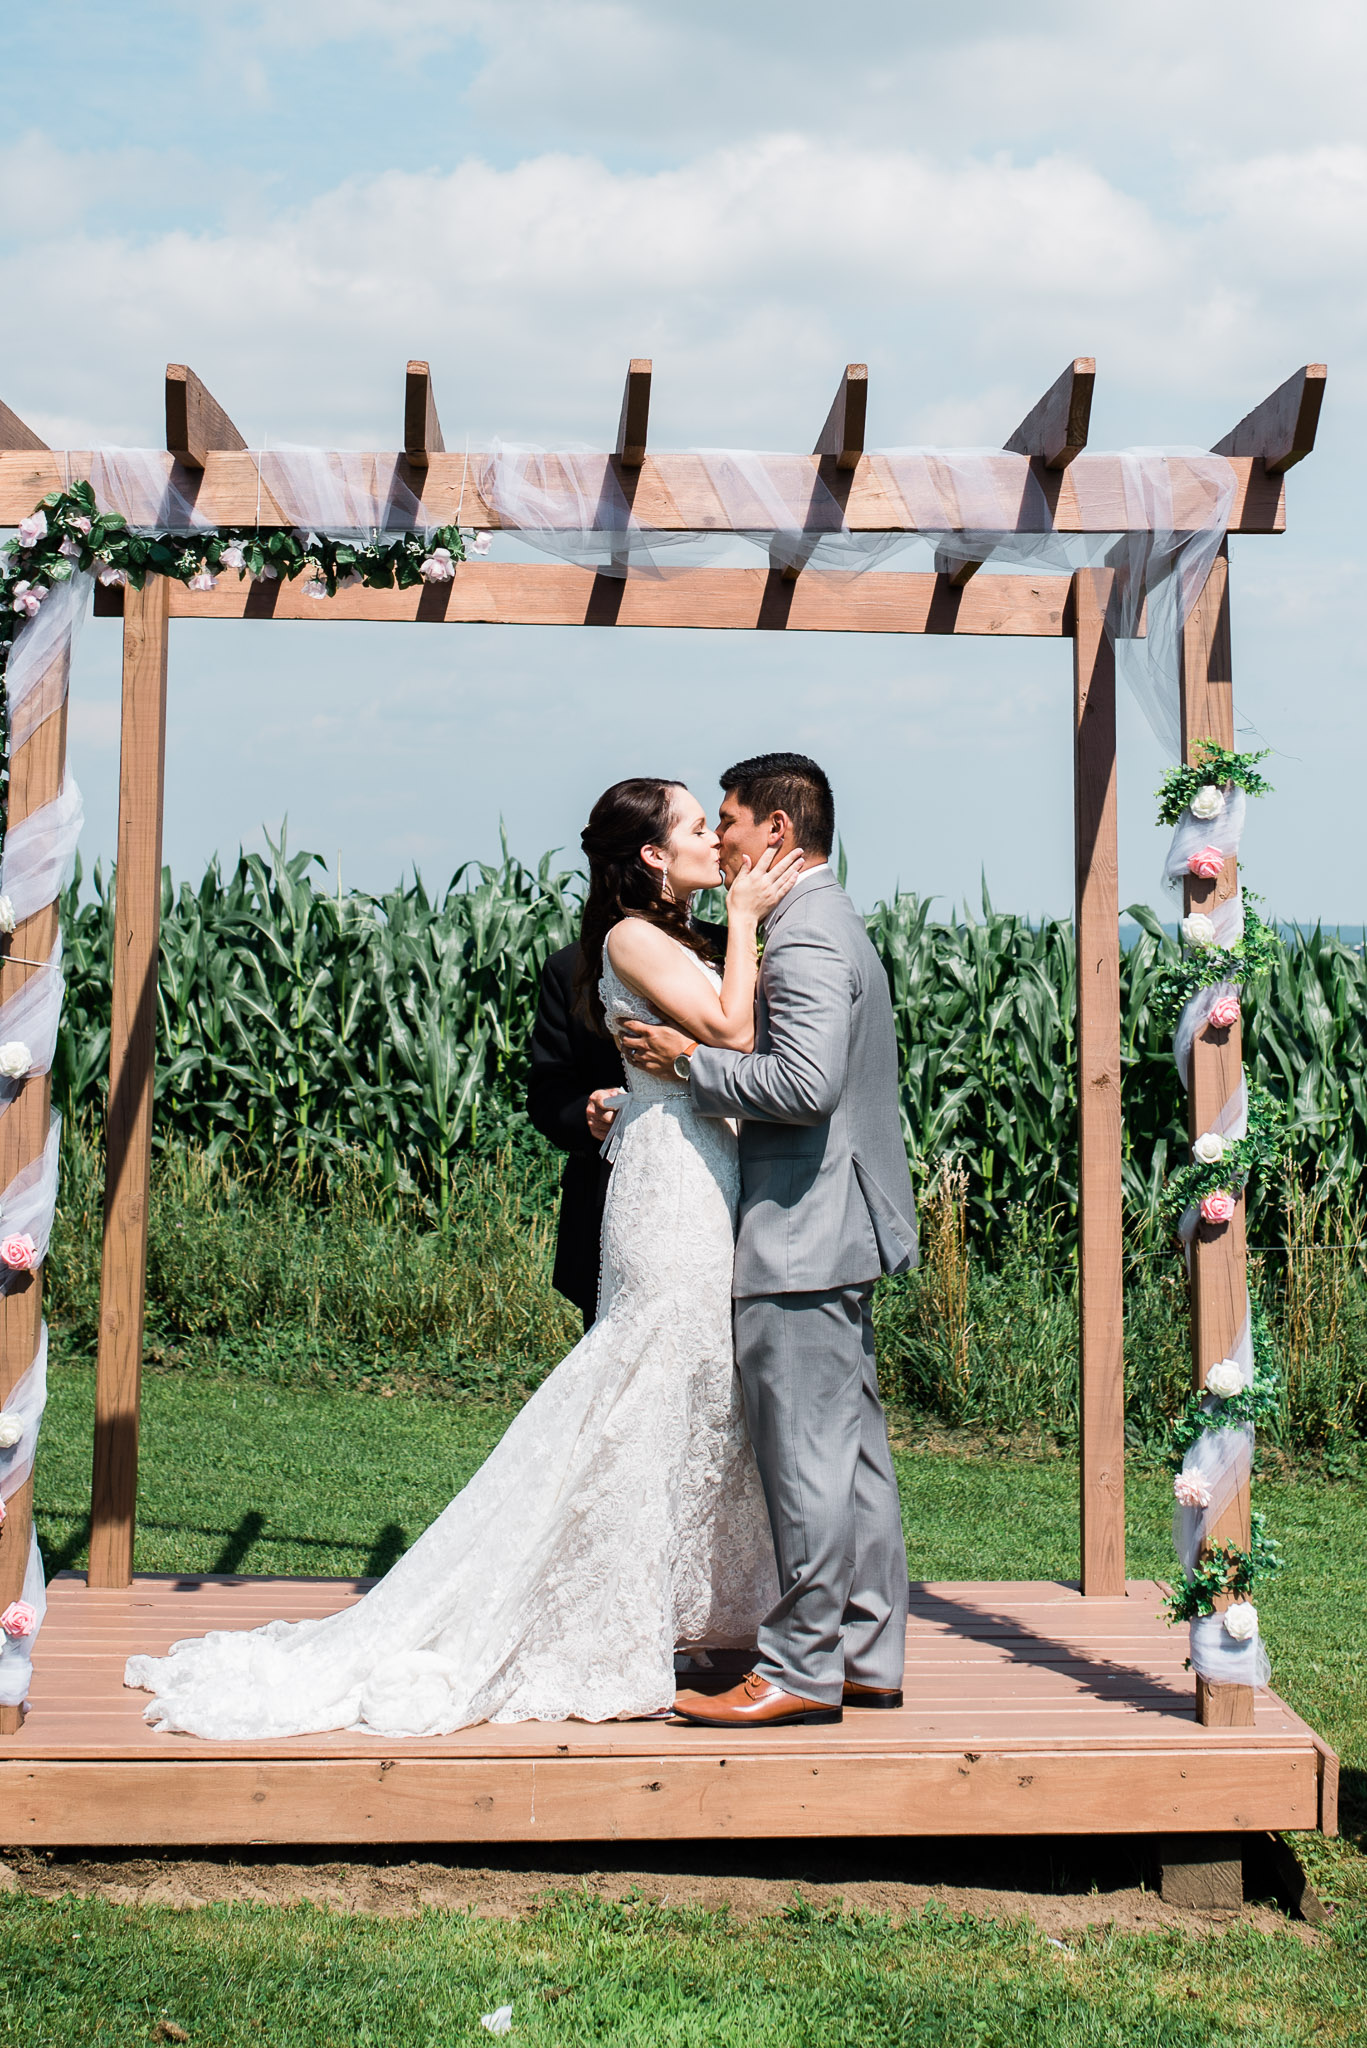 Outdoor Wedding Ceremony, Pittsburgh Wedding Photographer, The Event Barn at Highland Farms, Somerset PA-3544.jpg